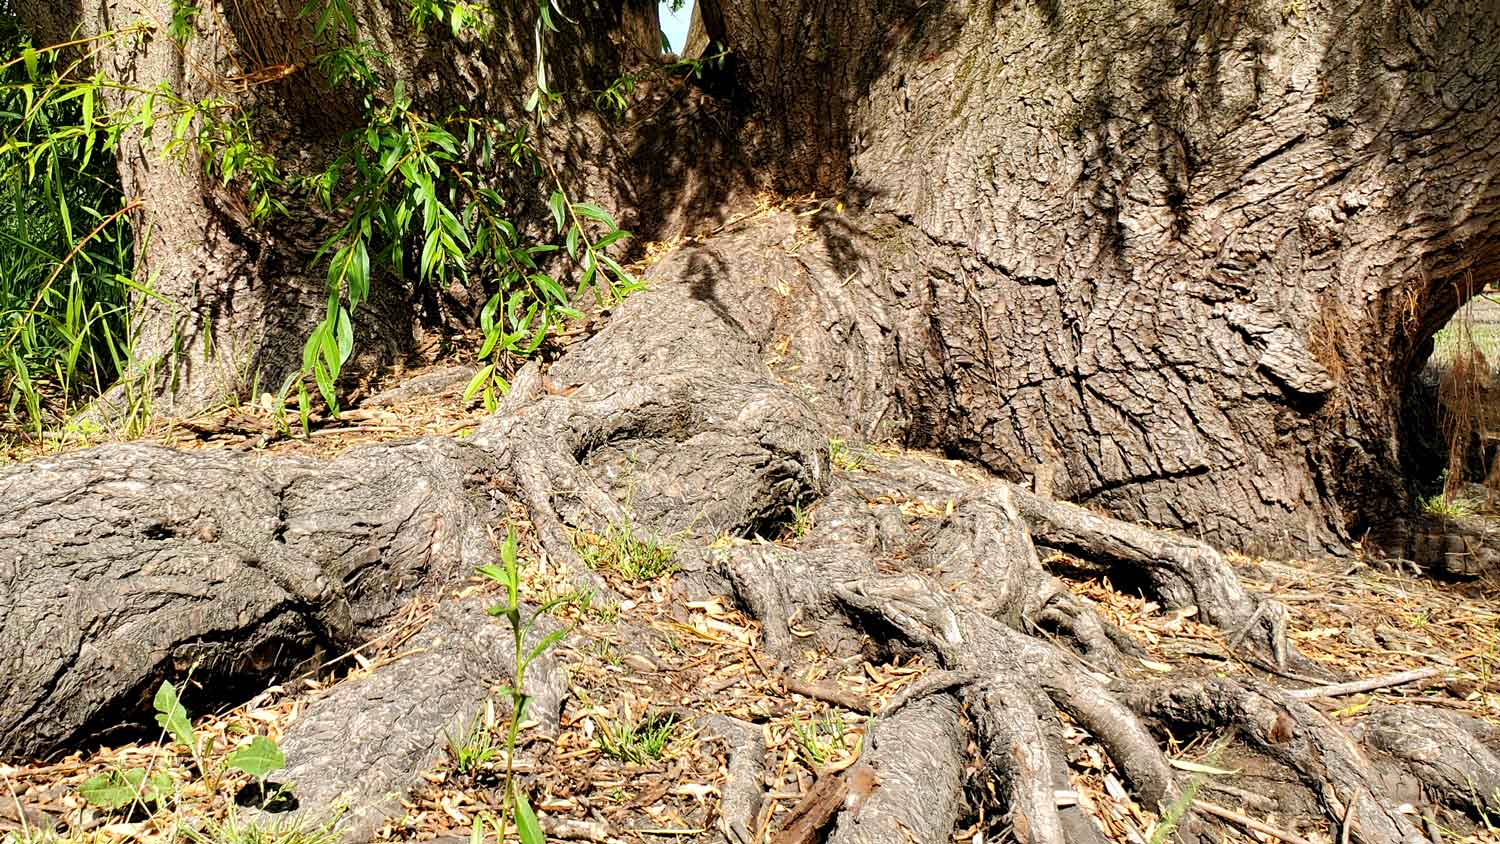 Tree base and exposed roots of weeping willow tree along pond edge at Veteran Acres Park.